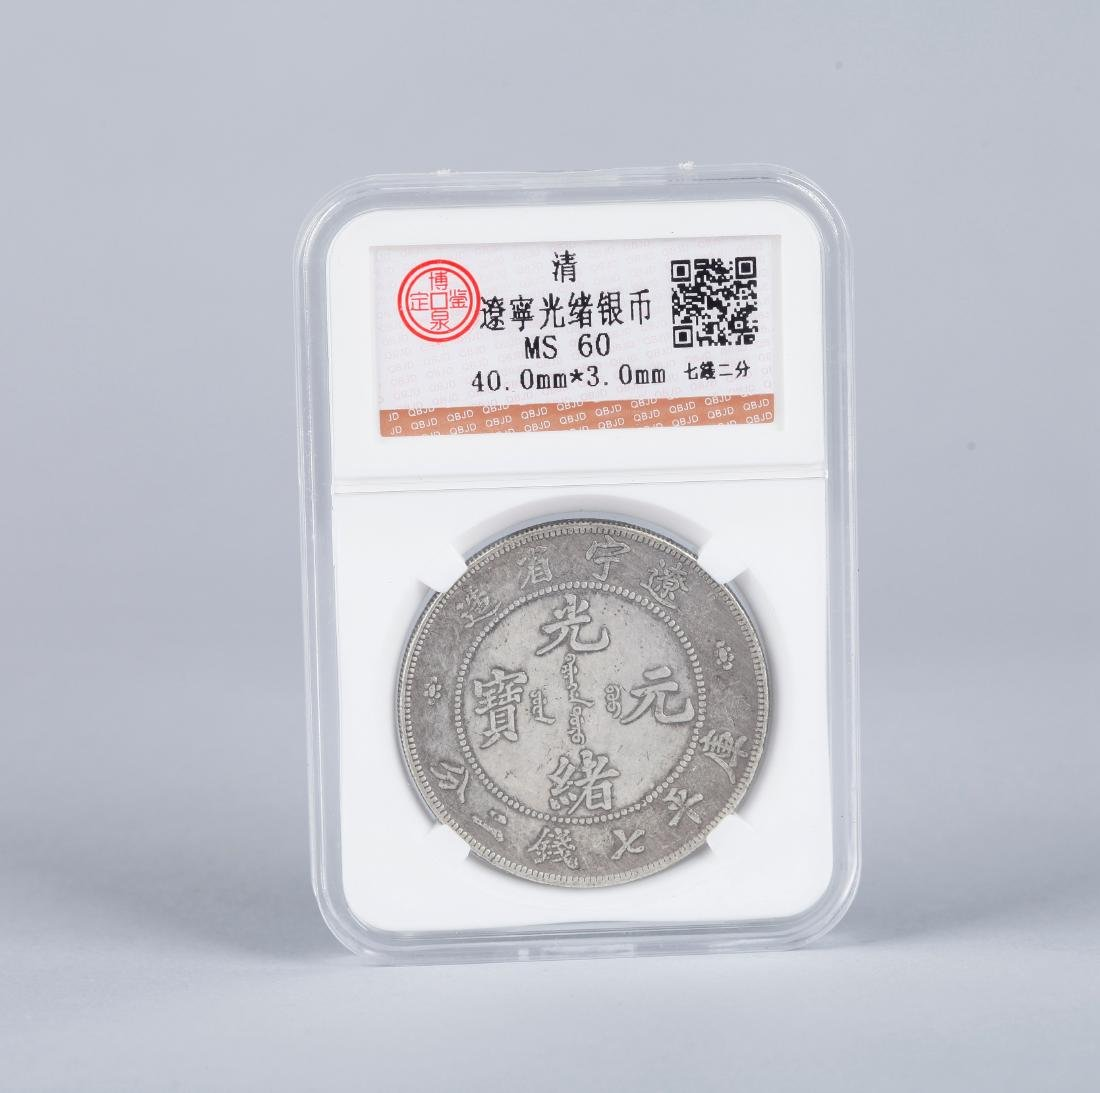 A CHINESE SILVER COIN, GUANGXU, QING DYNASTY